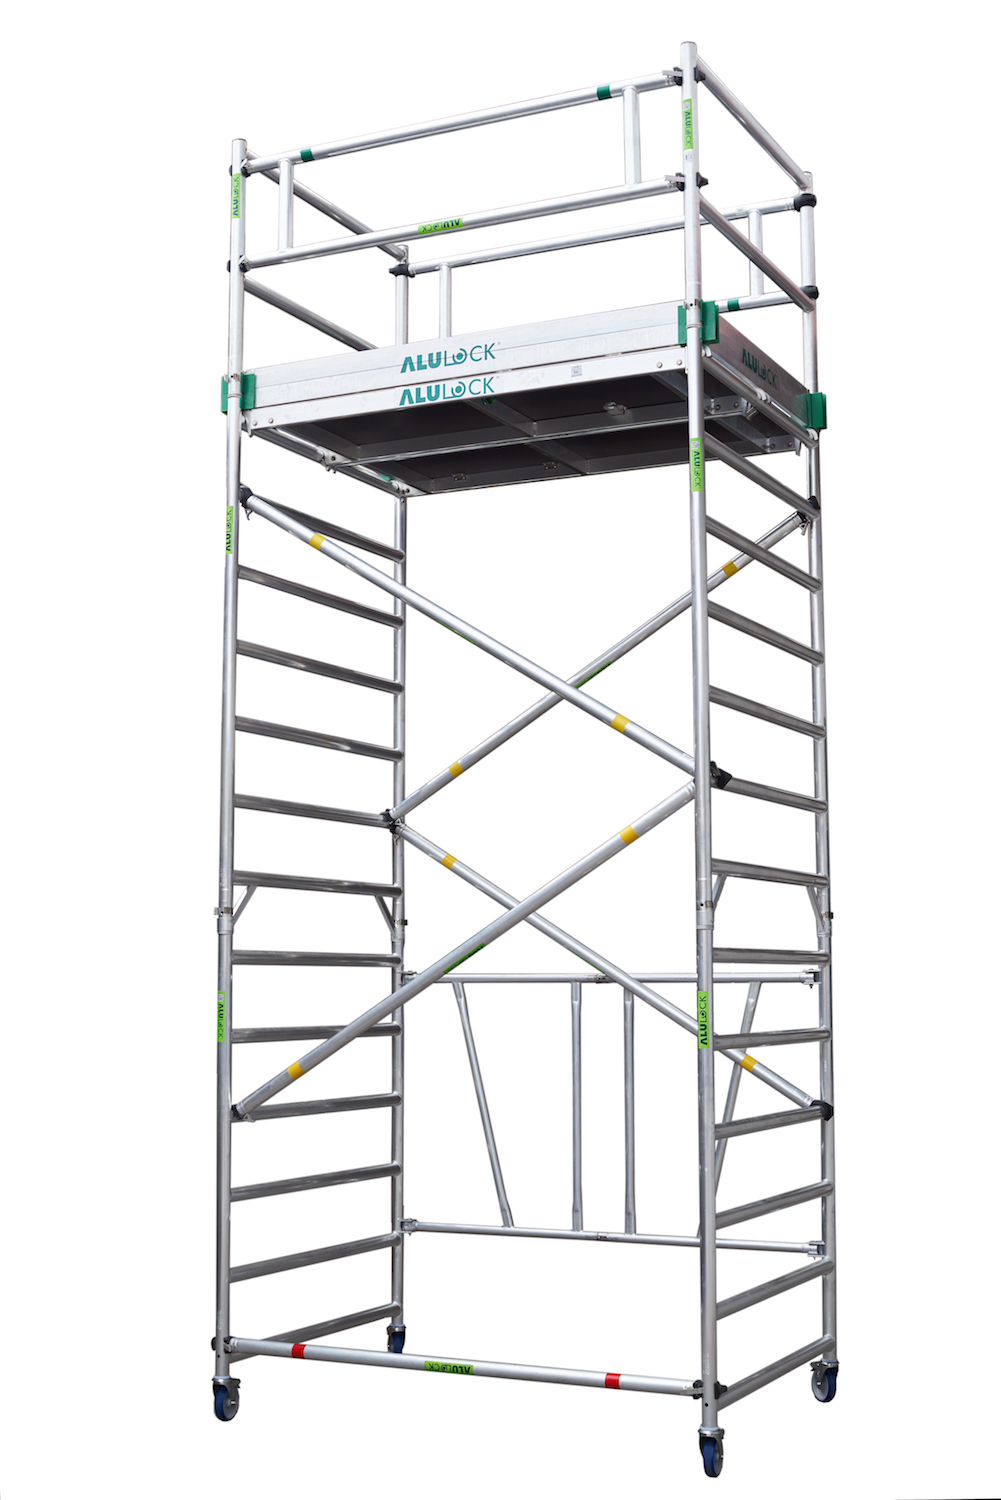 Folding Scaffold 135 x 180 cm. Working height: 5.65 m.